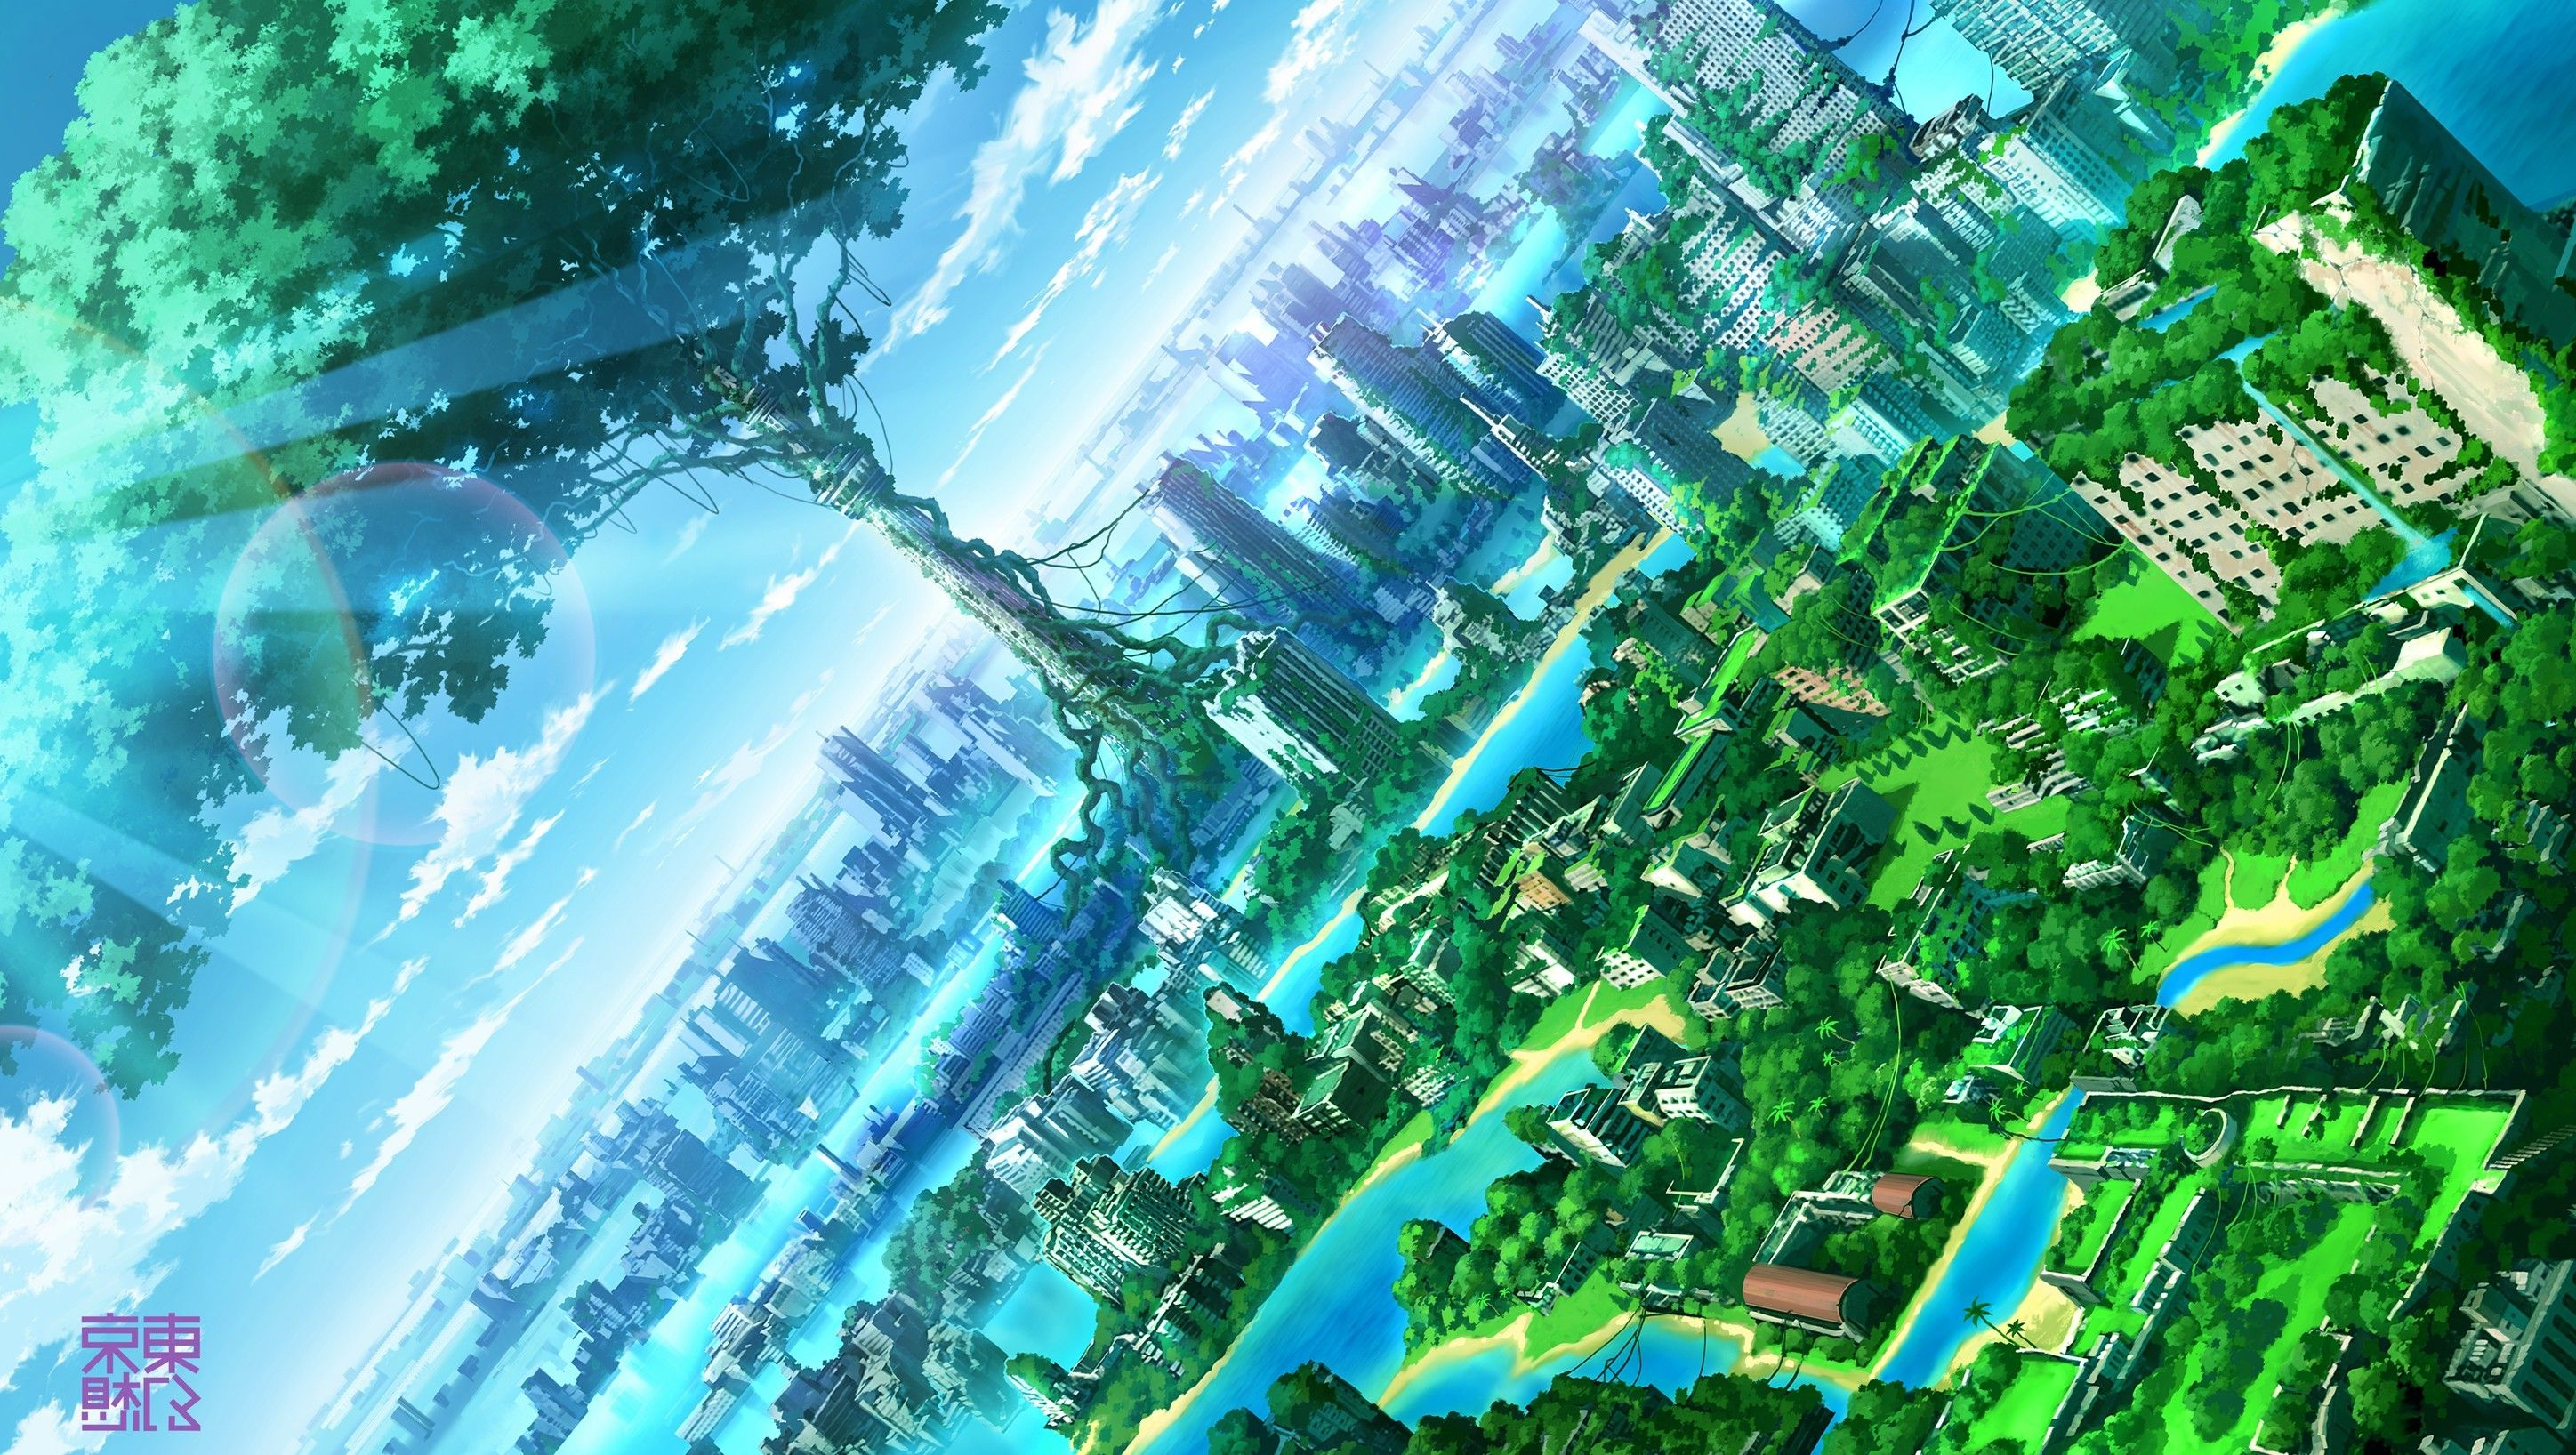 Anime city backgrounds art